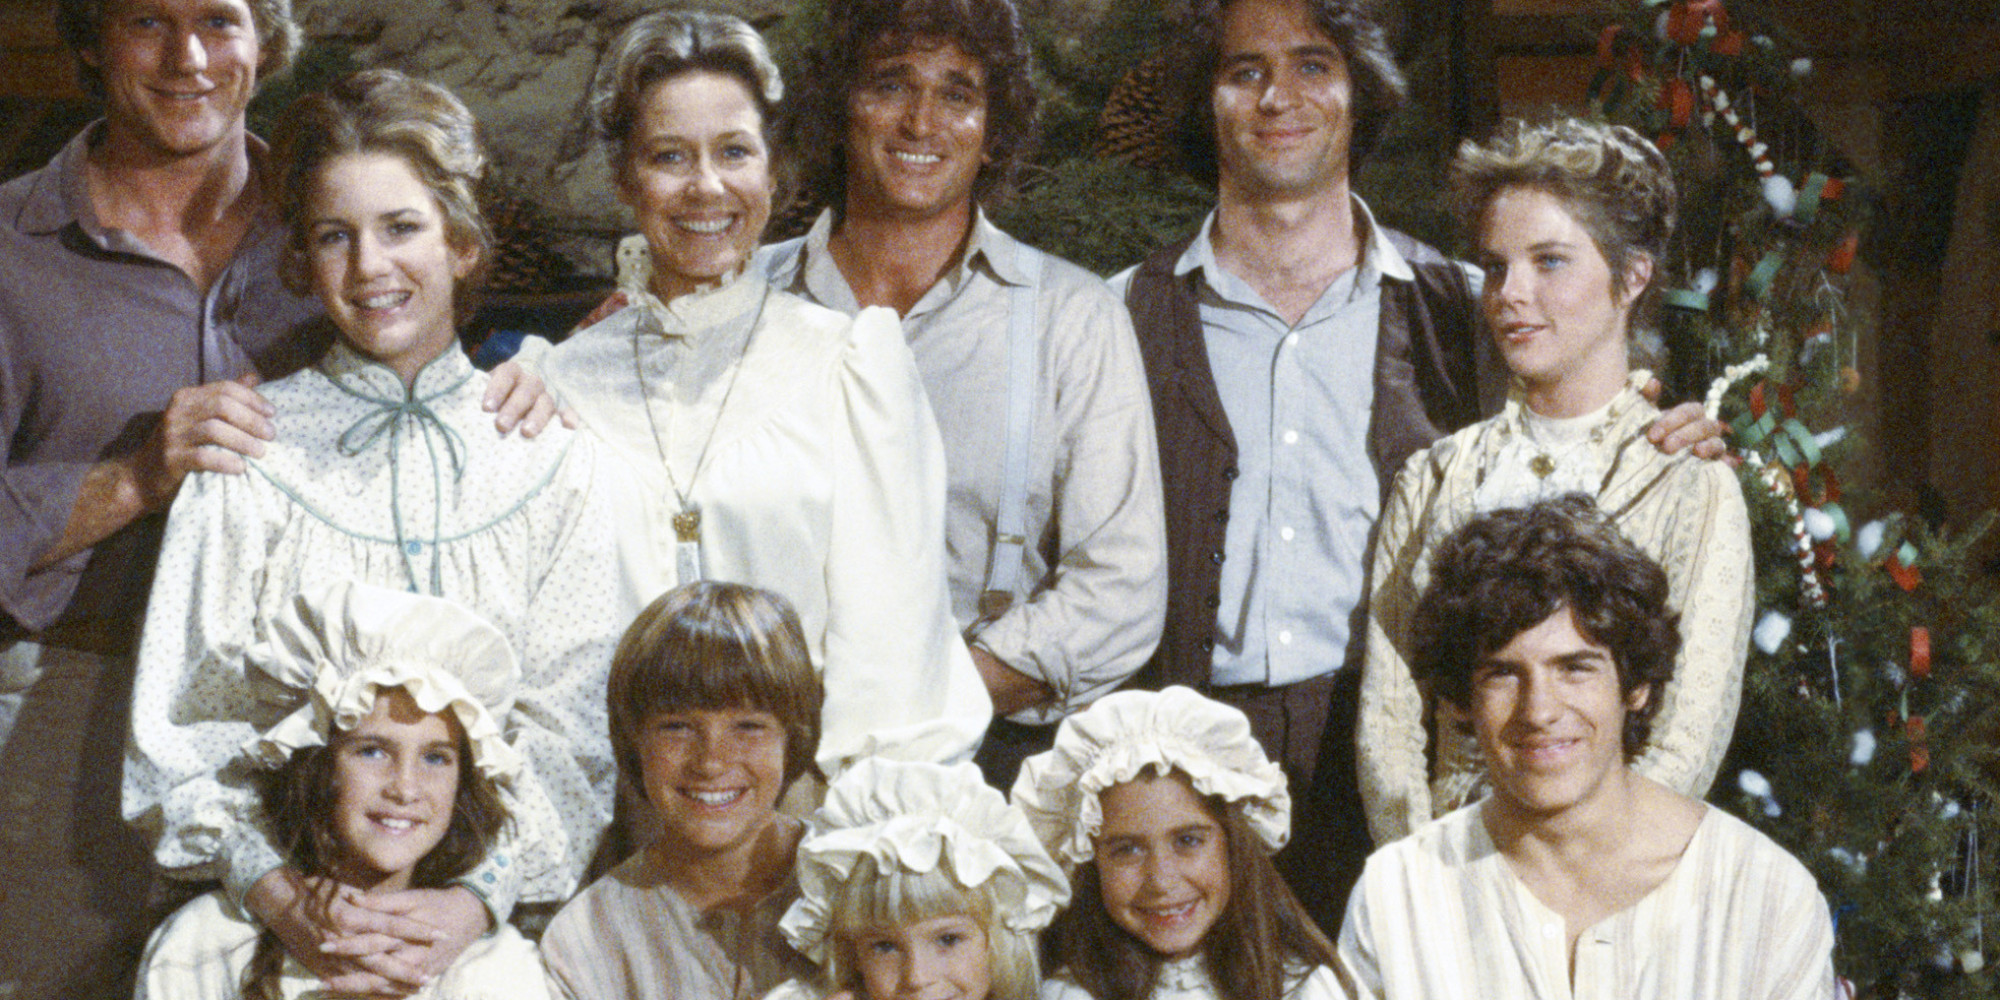 the 'little house on the prairie' star who left hollywood for